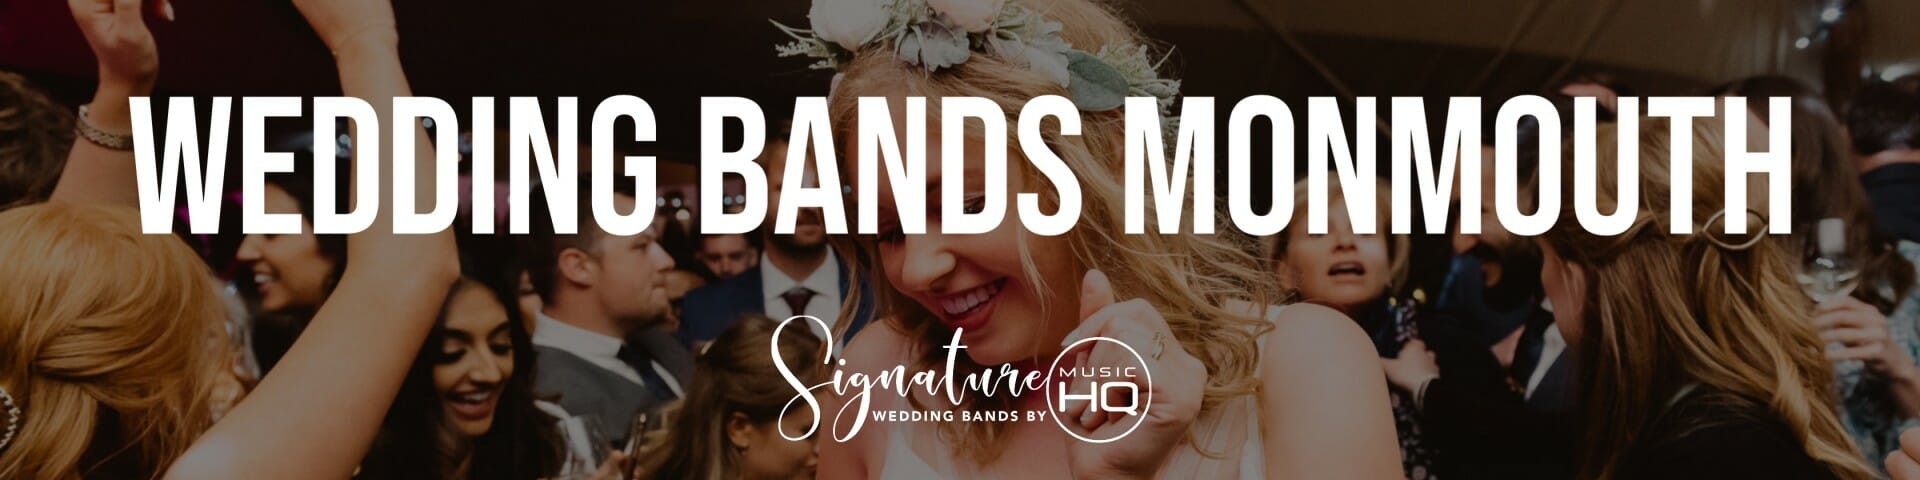 Wedding Bands in Monmouth